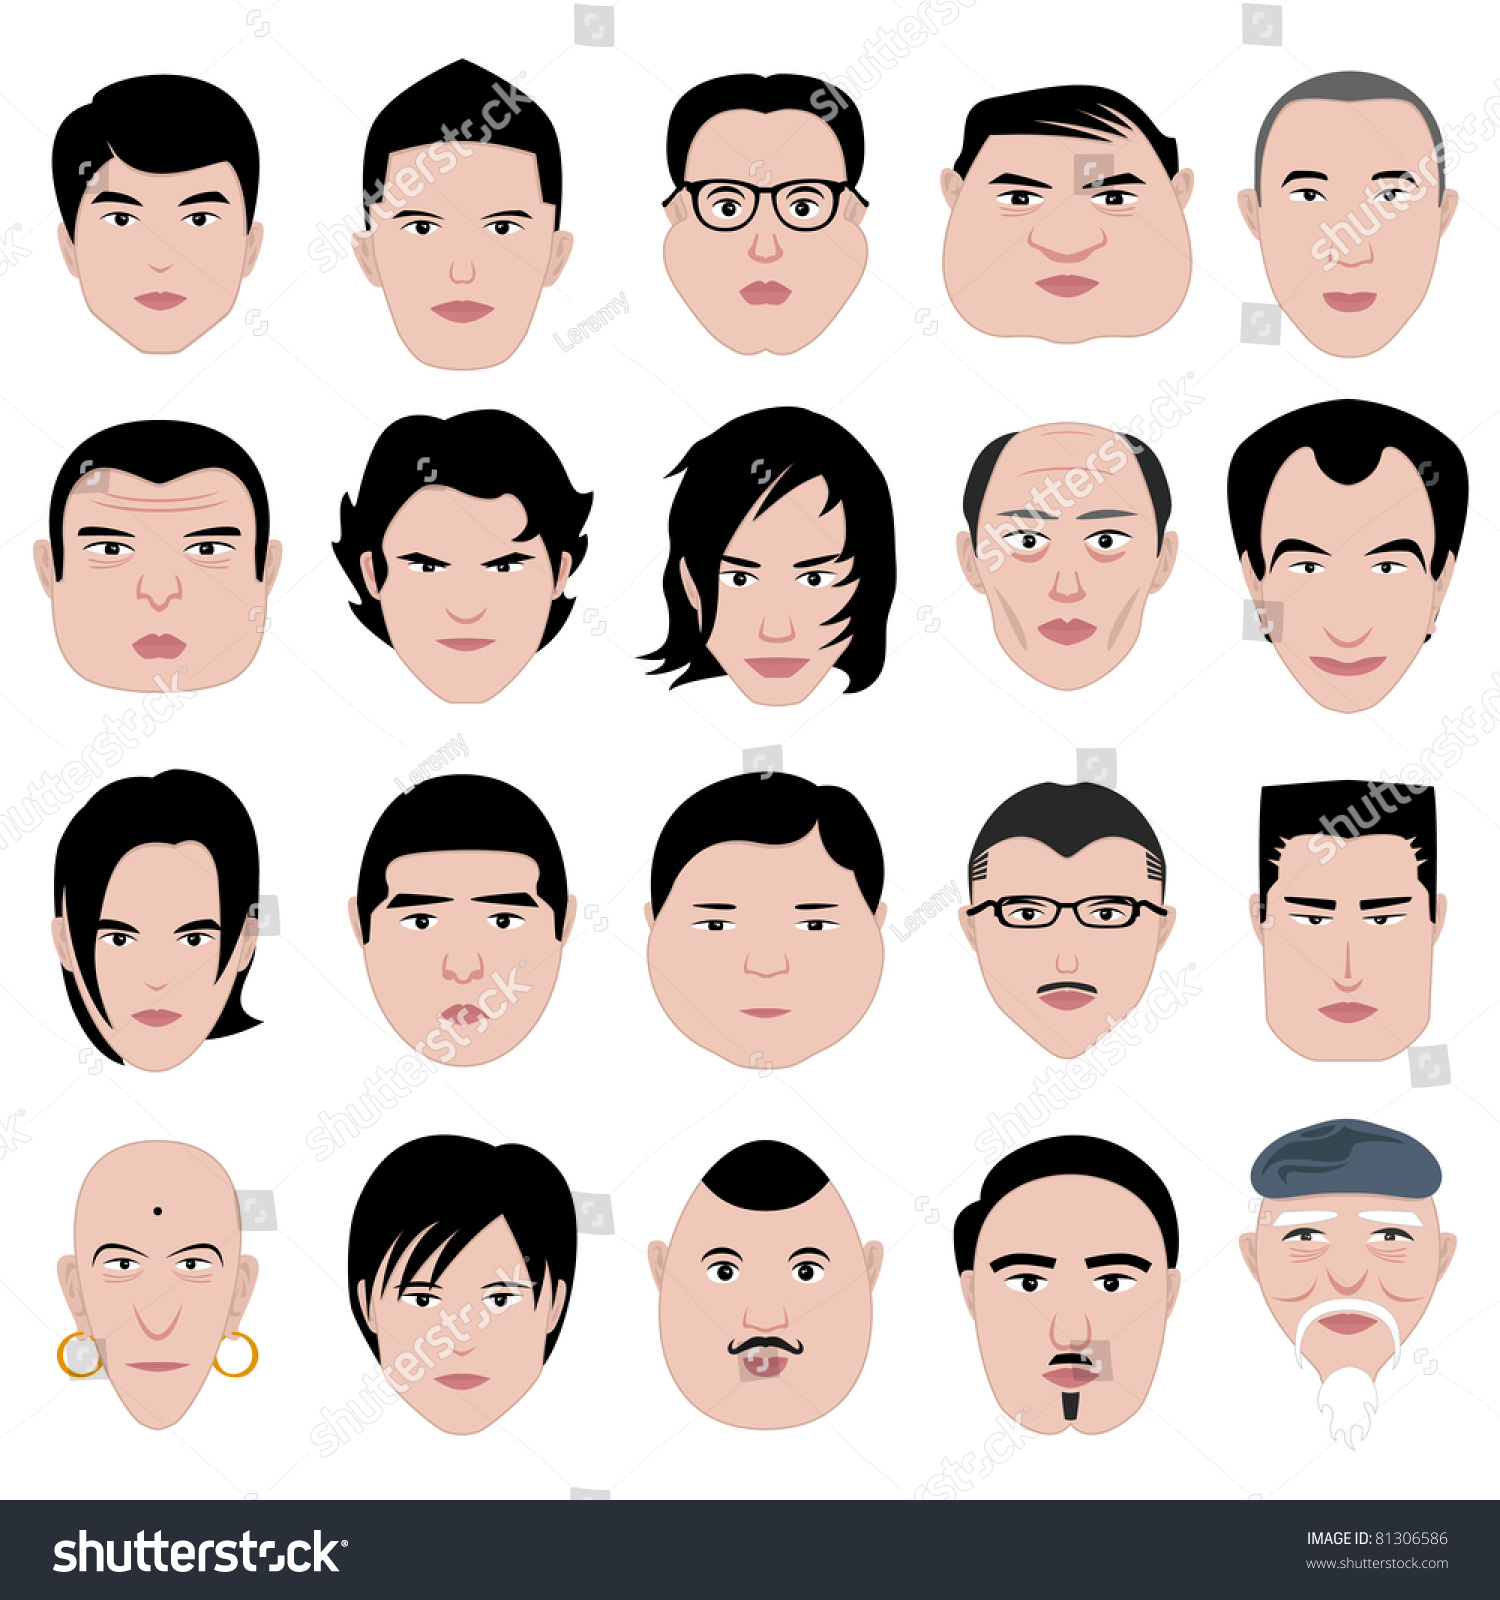 Man Face Shape Hairstyle Round Fat Stock Vector (Royalty Free) 81306586